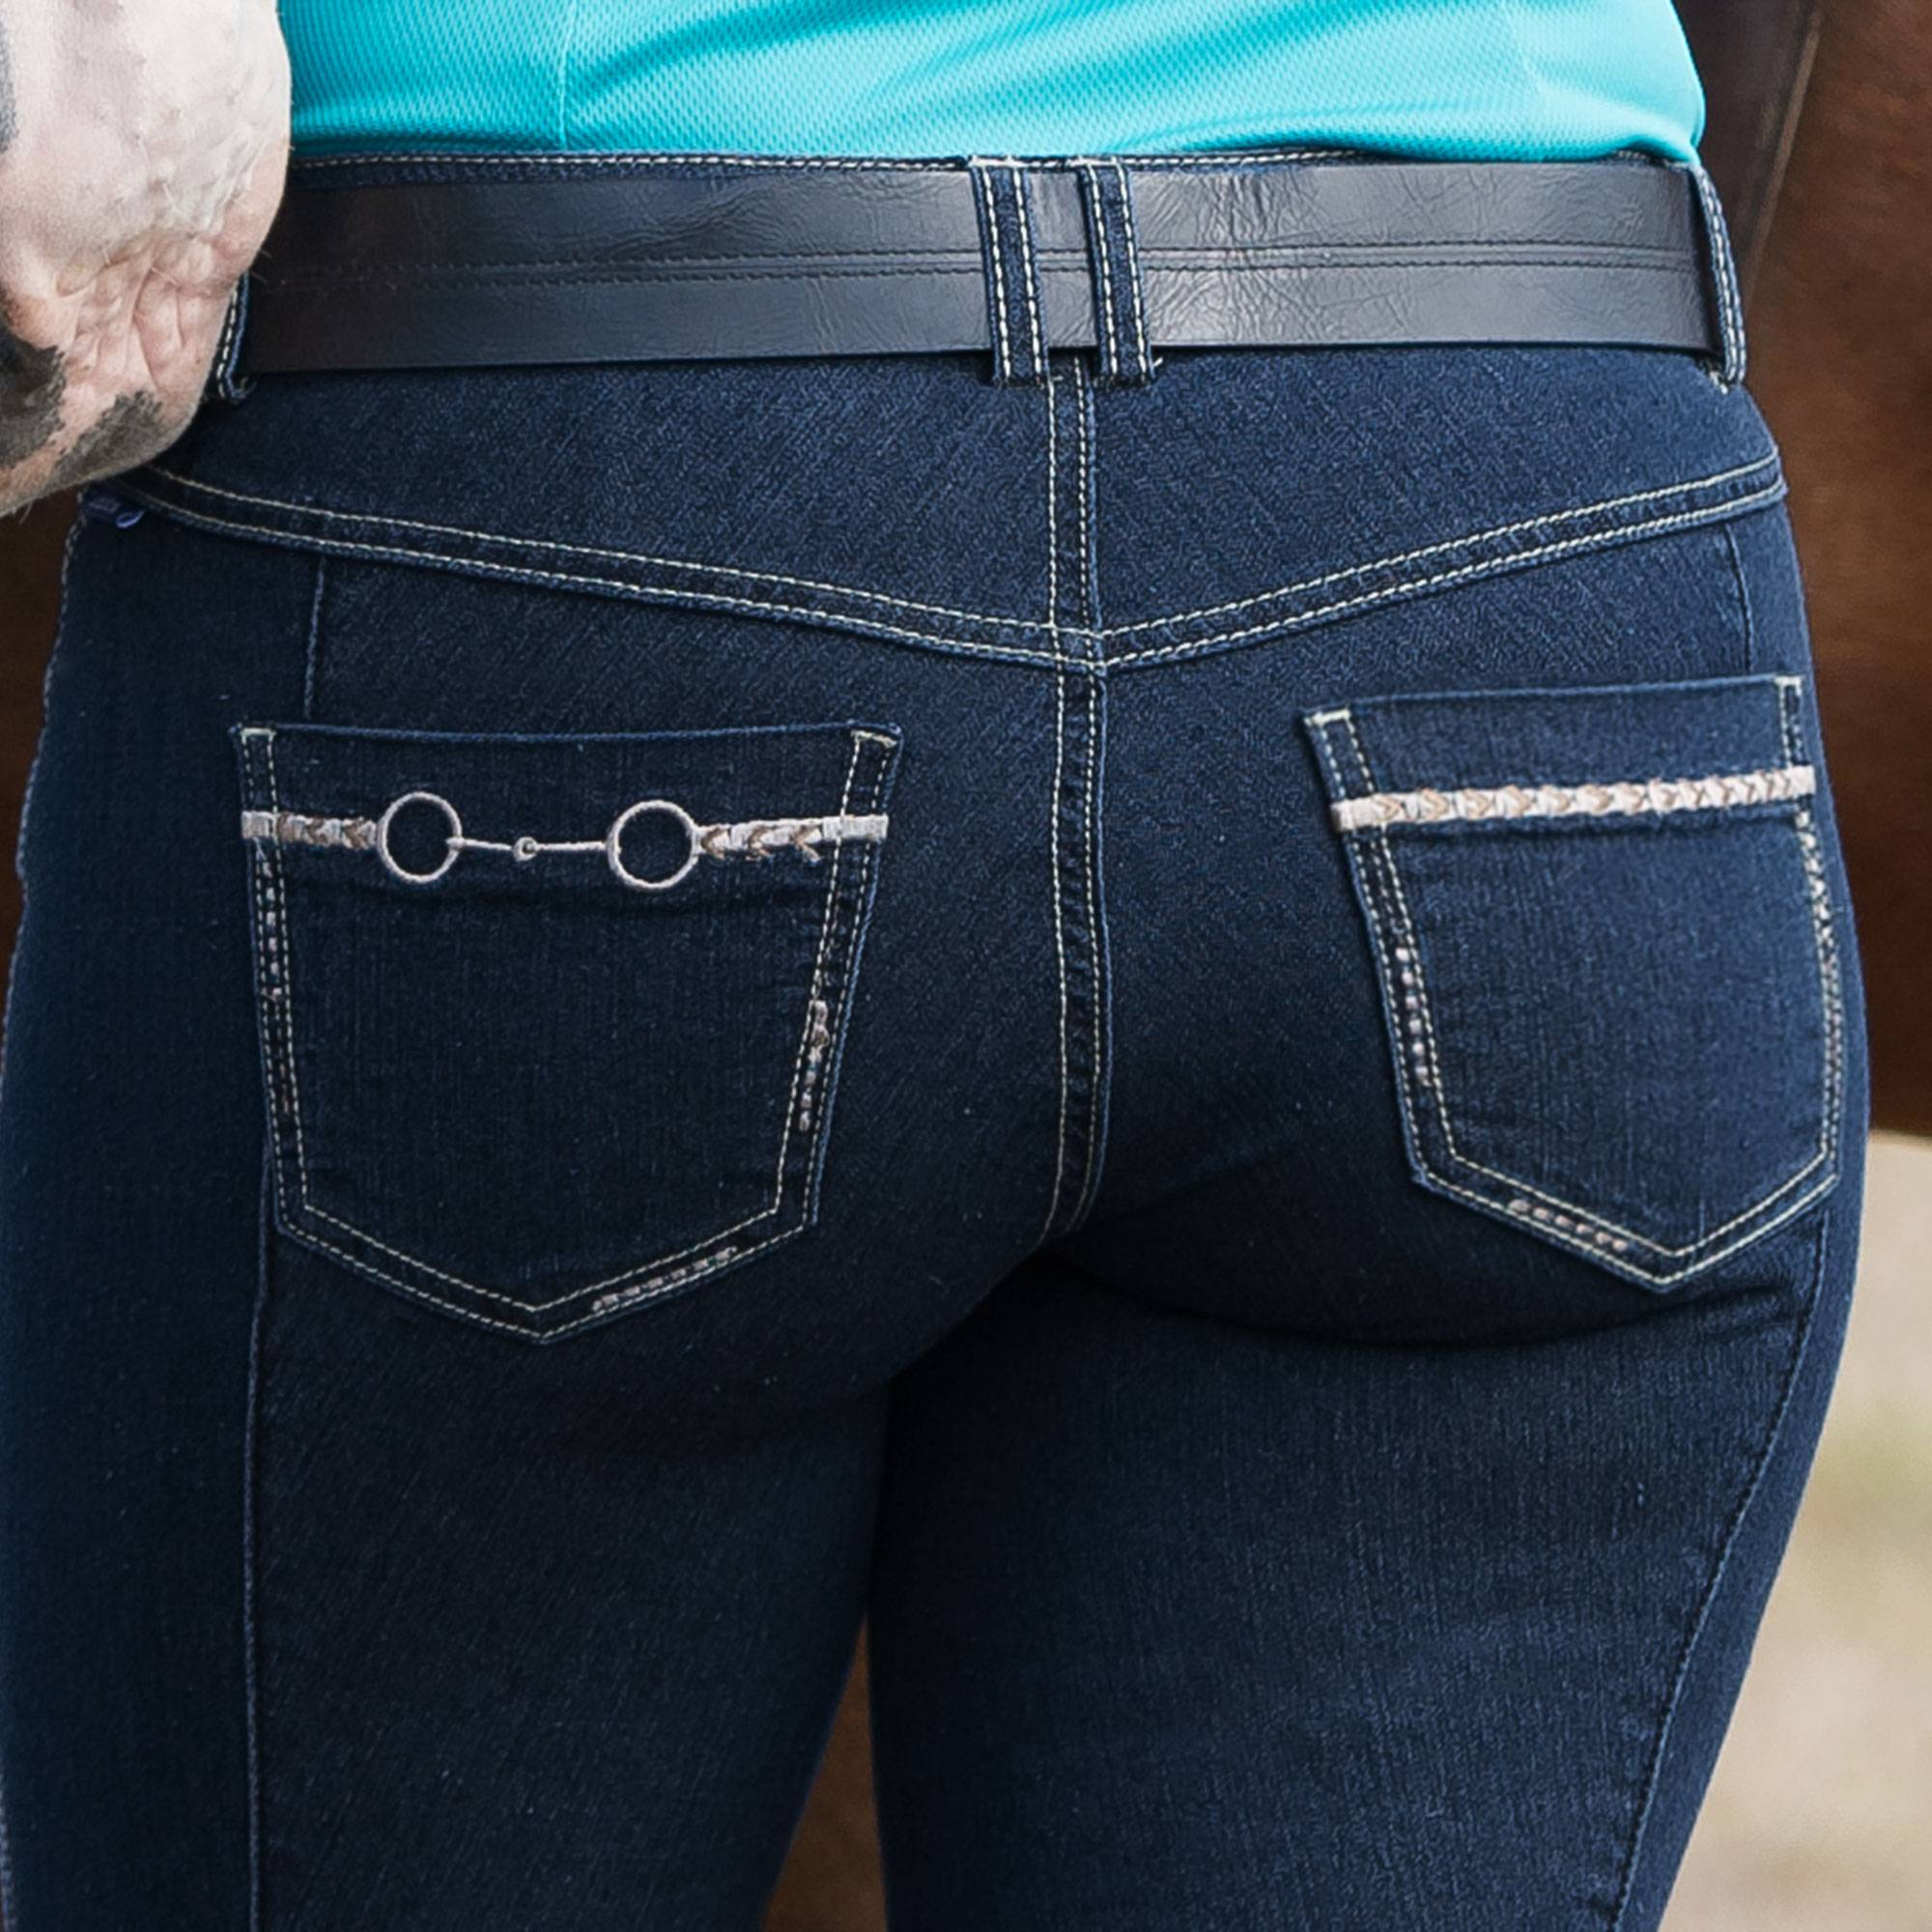 Irideon Kids' Stretch Denim Bit And Reins Breeches